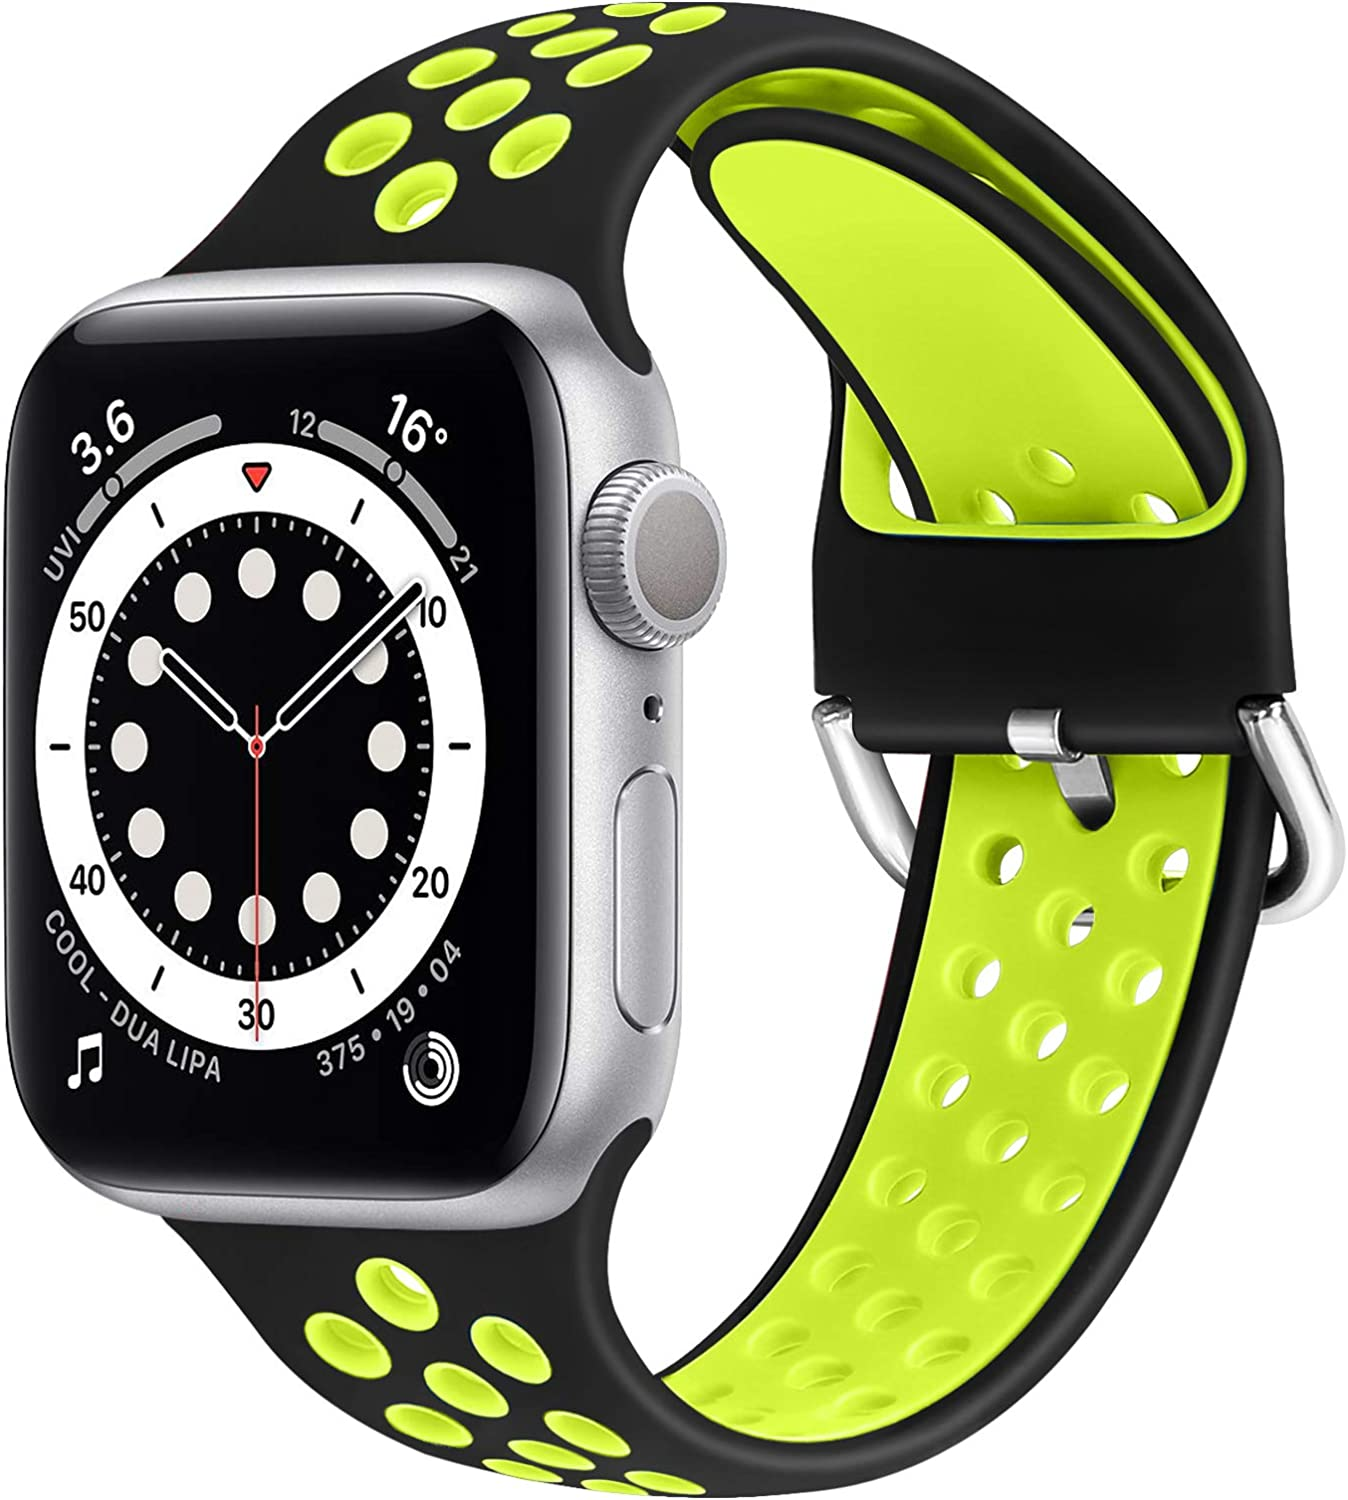 WNIPH Silicone Sports Bands Compatible with Apple Watch Band 42mm 44mm, Soft Breathable Silicone Straps Replacement Wristband for iwatch Series 6/5/4/3/2/1/SE for Men Women (Black Yellow, 42mm/44mm)